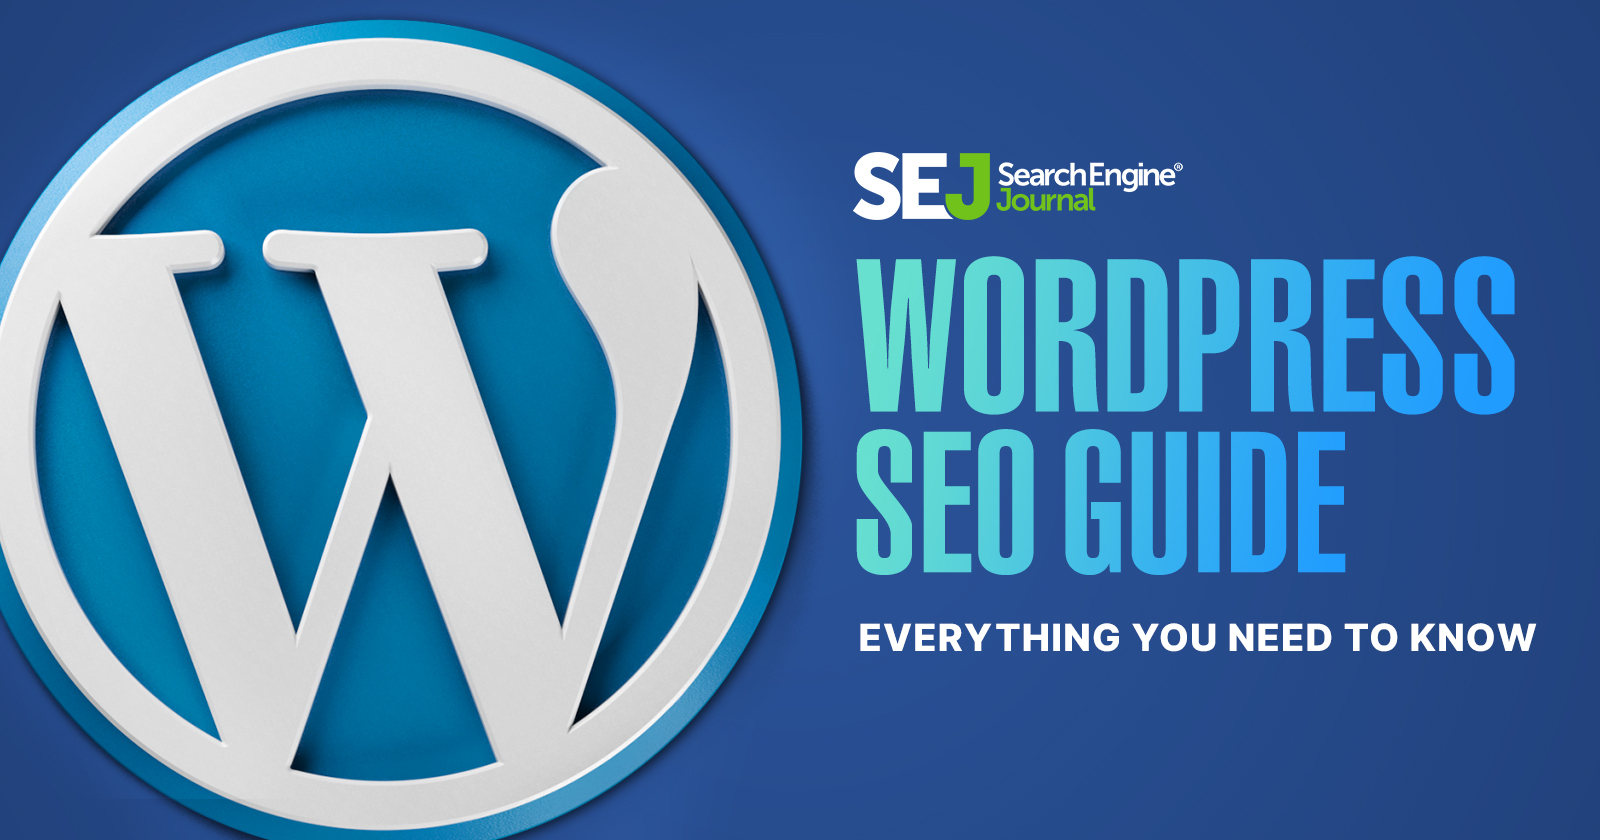 WordPress SEO Guide: Everything You Need to Know [Ebook] via @sejournal, @MrDannyGoodwin